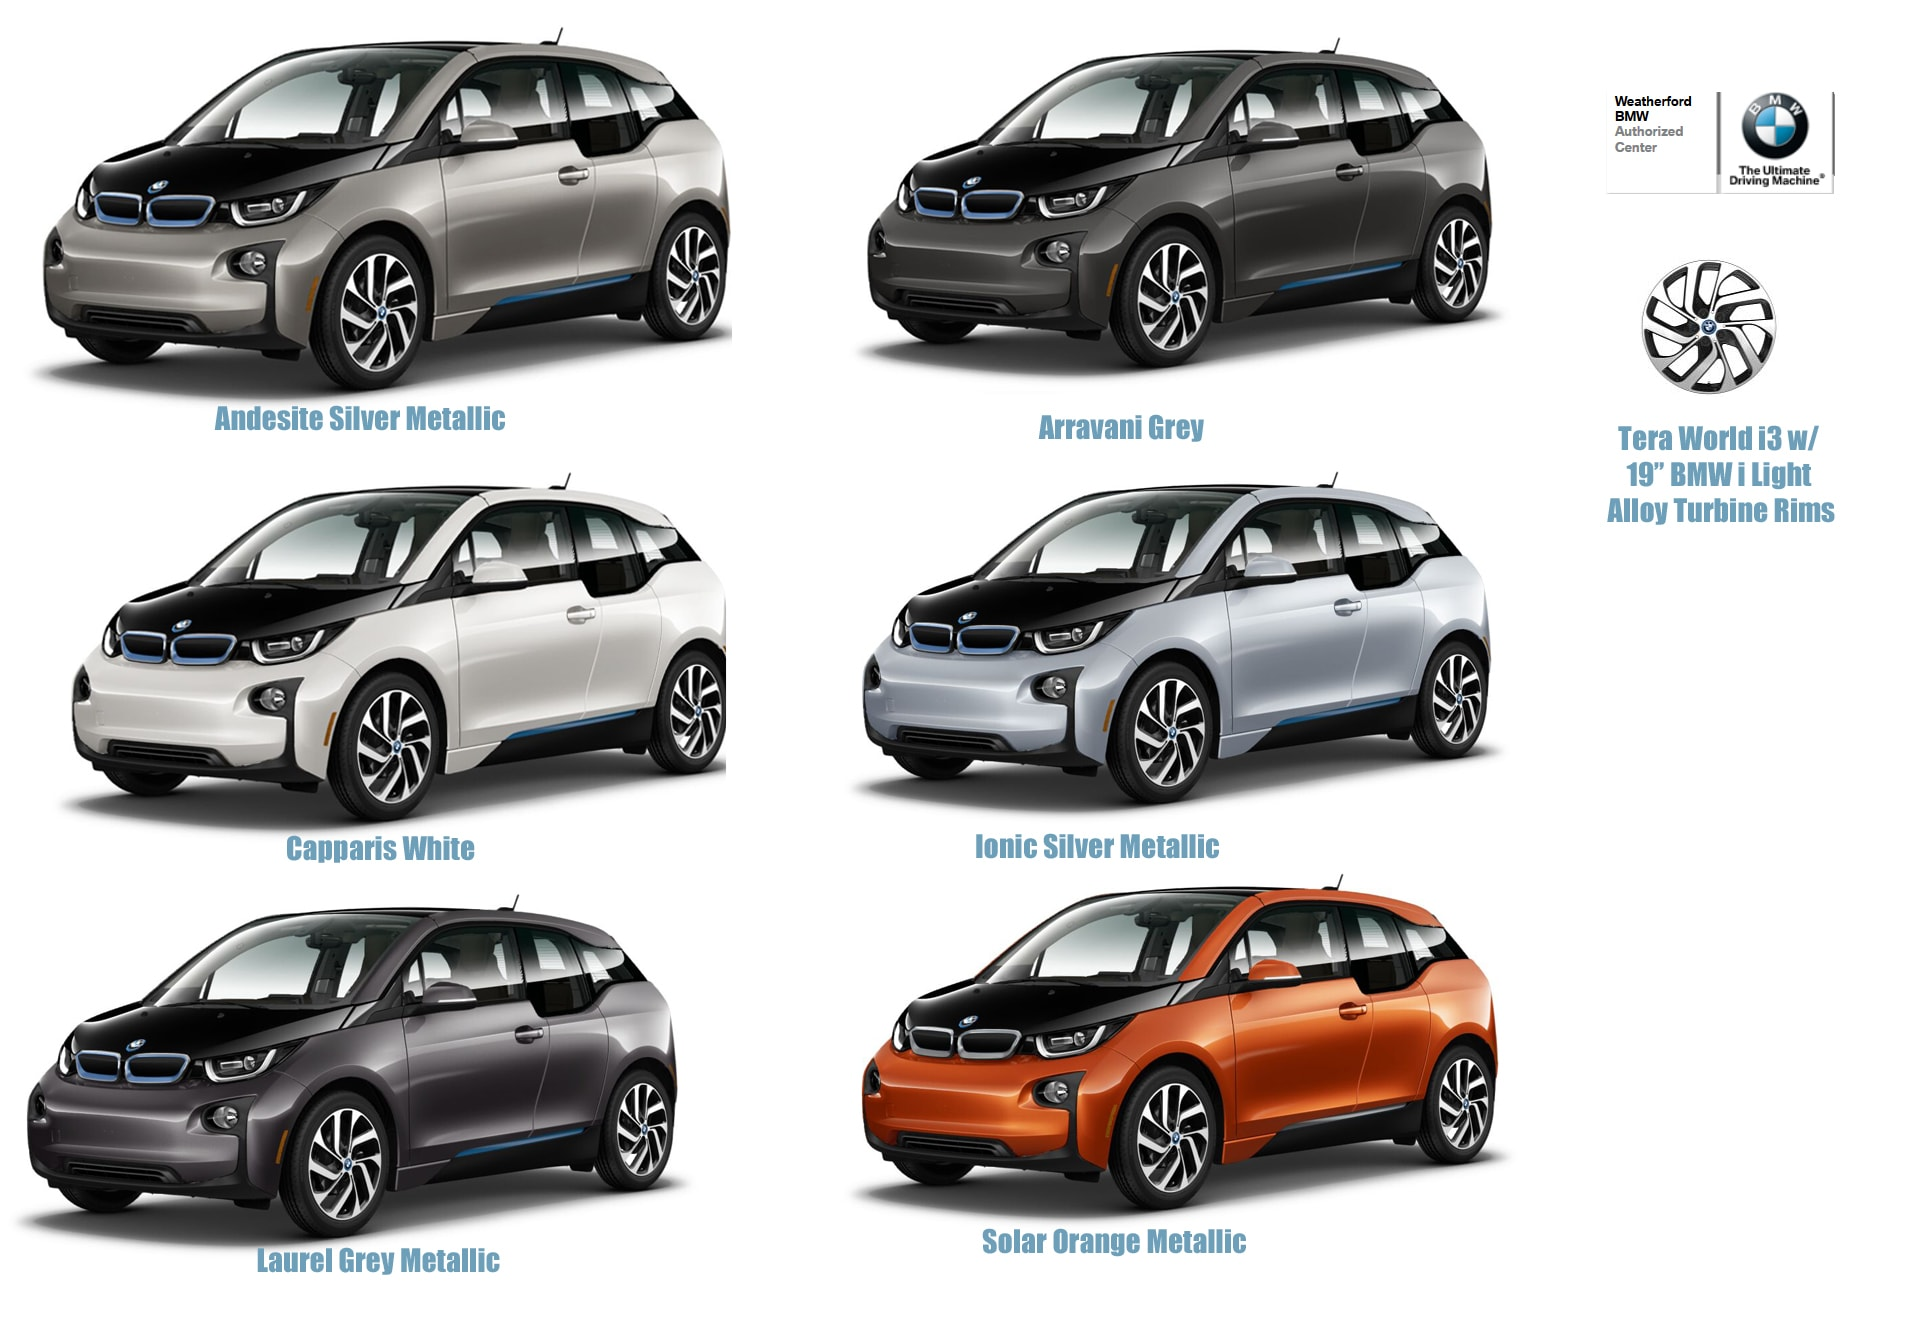 Weatherford Bmw | 2014 Bmw i3